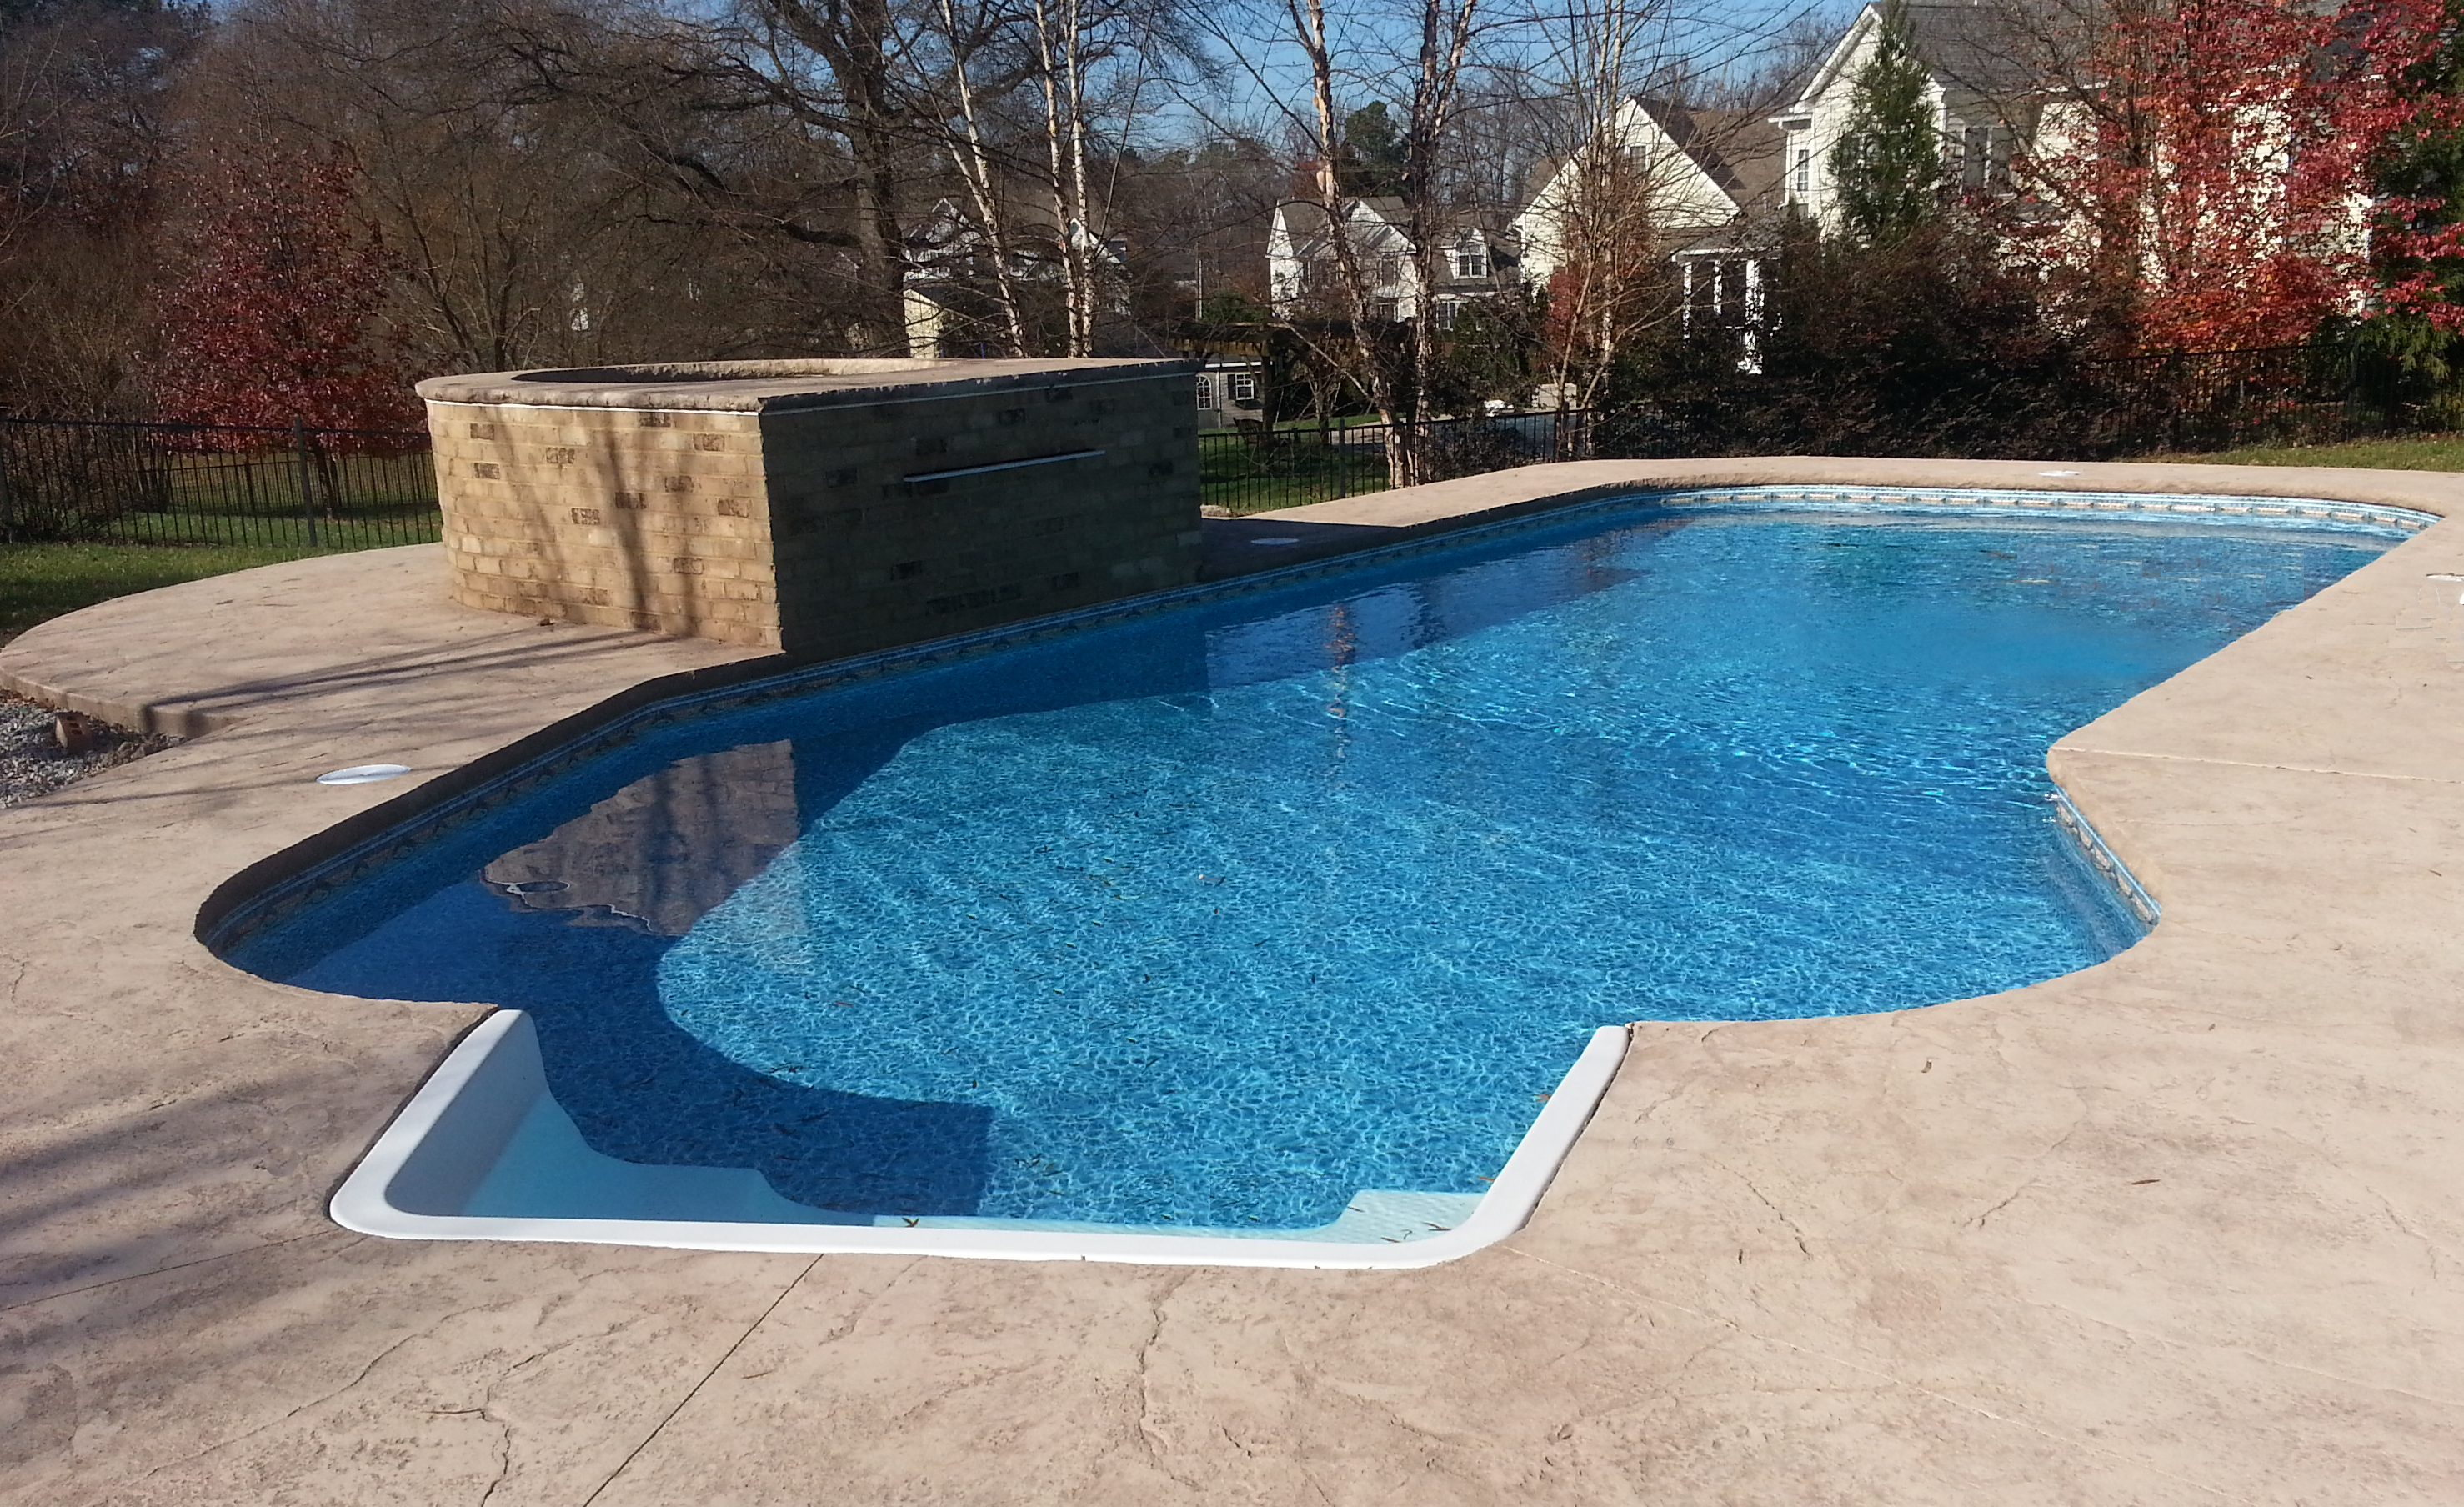 A Lazy L Inground Pool With Fiberglass Stairs In The Shallow End